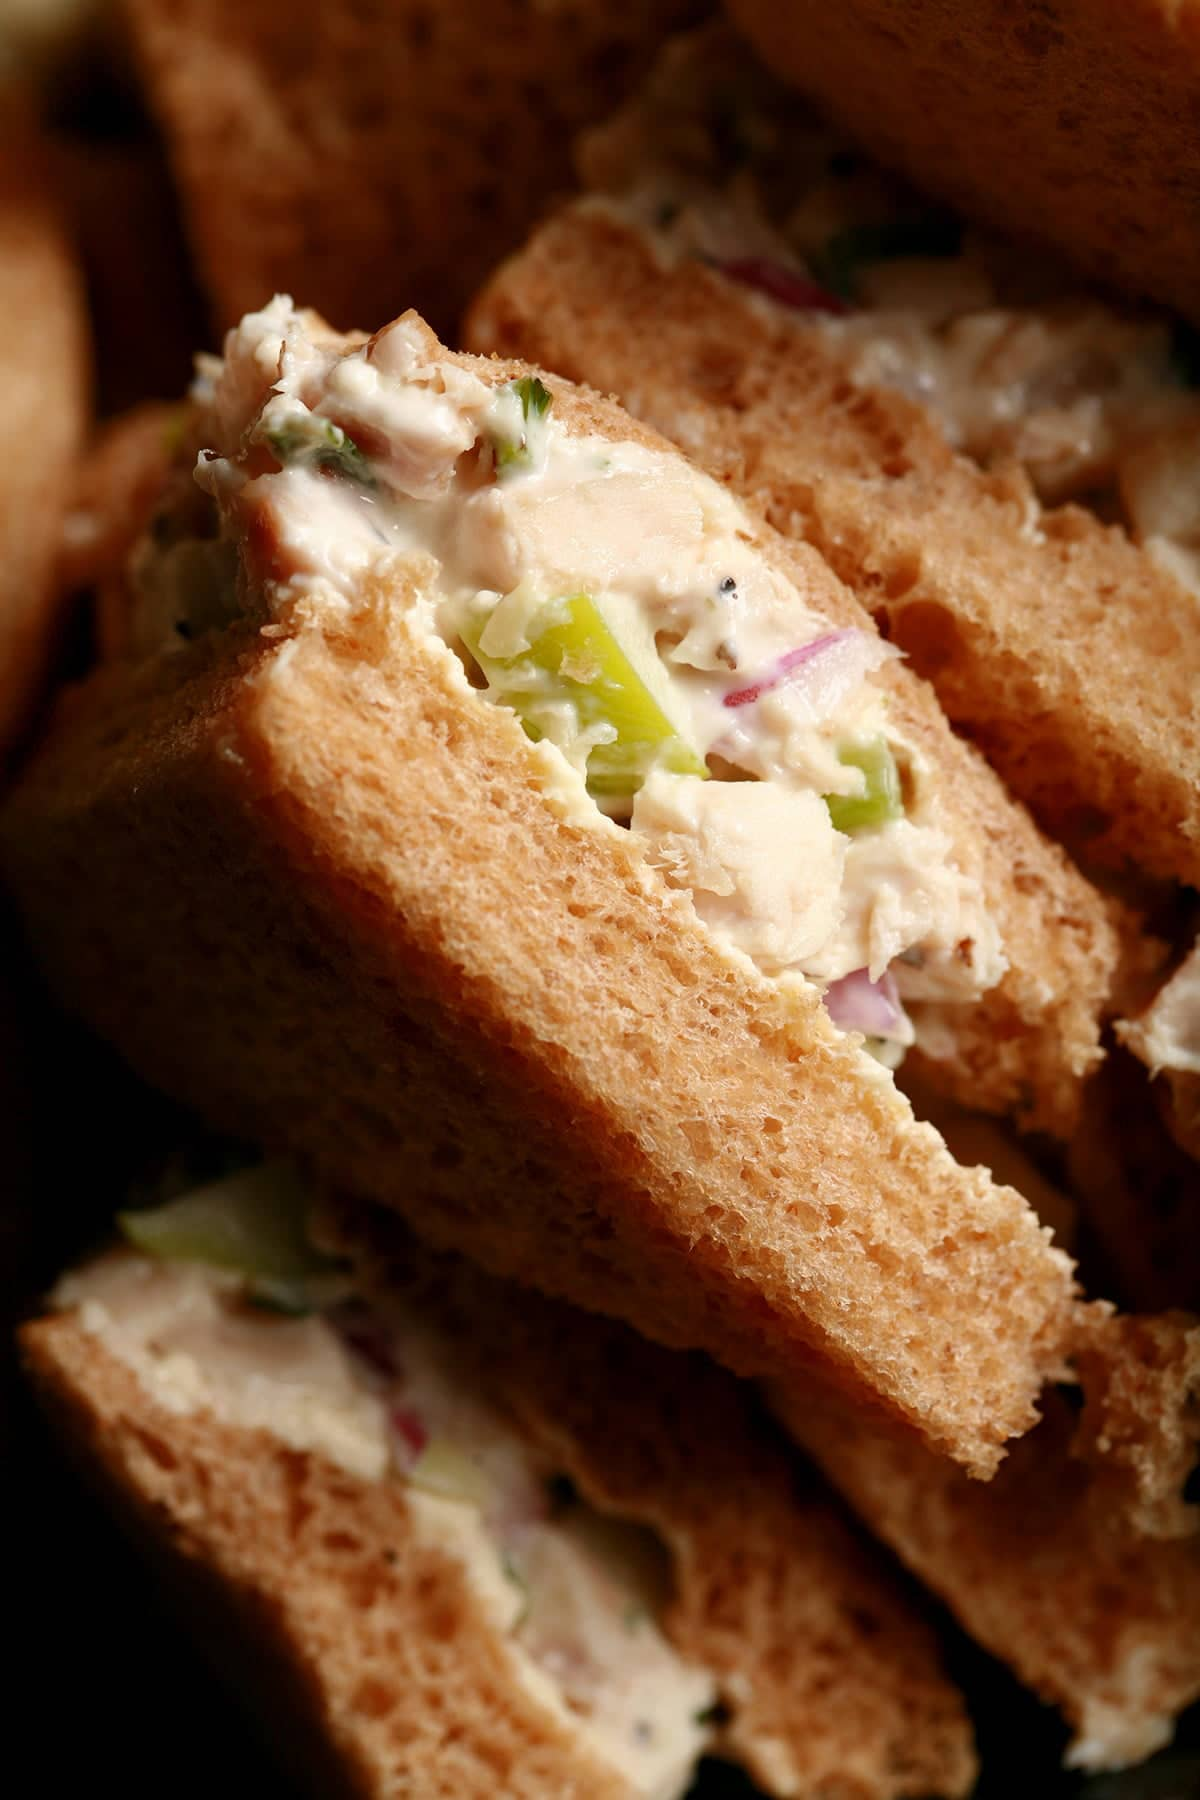 A close up view of triangle tea sandwiches filled with tarragon chicken salad.